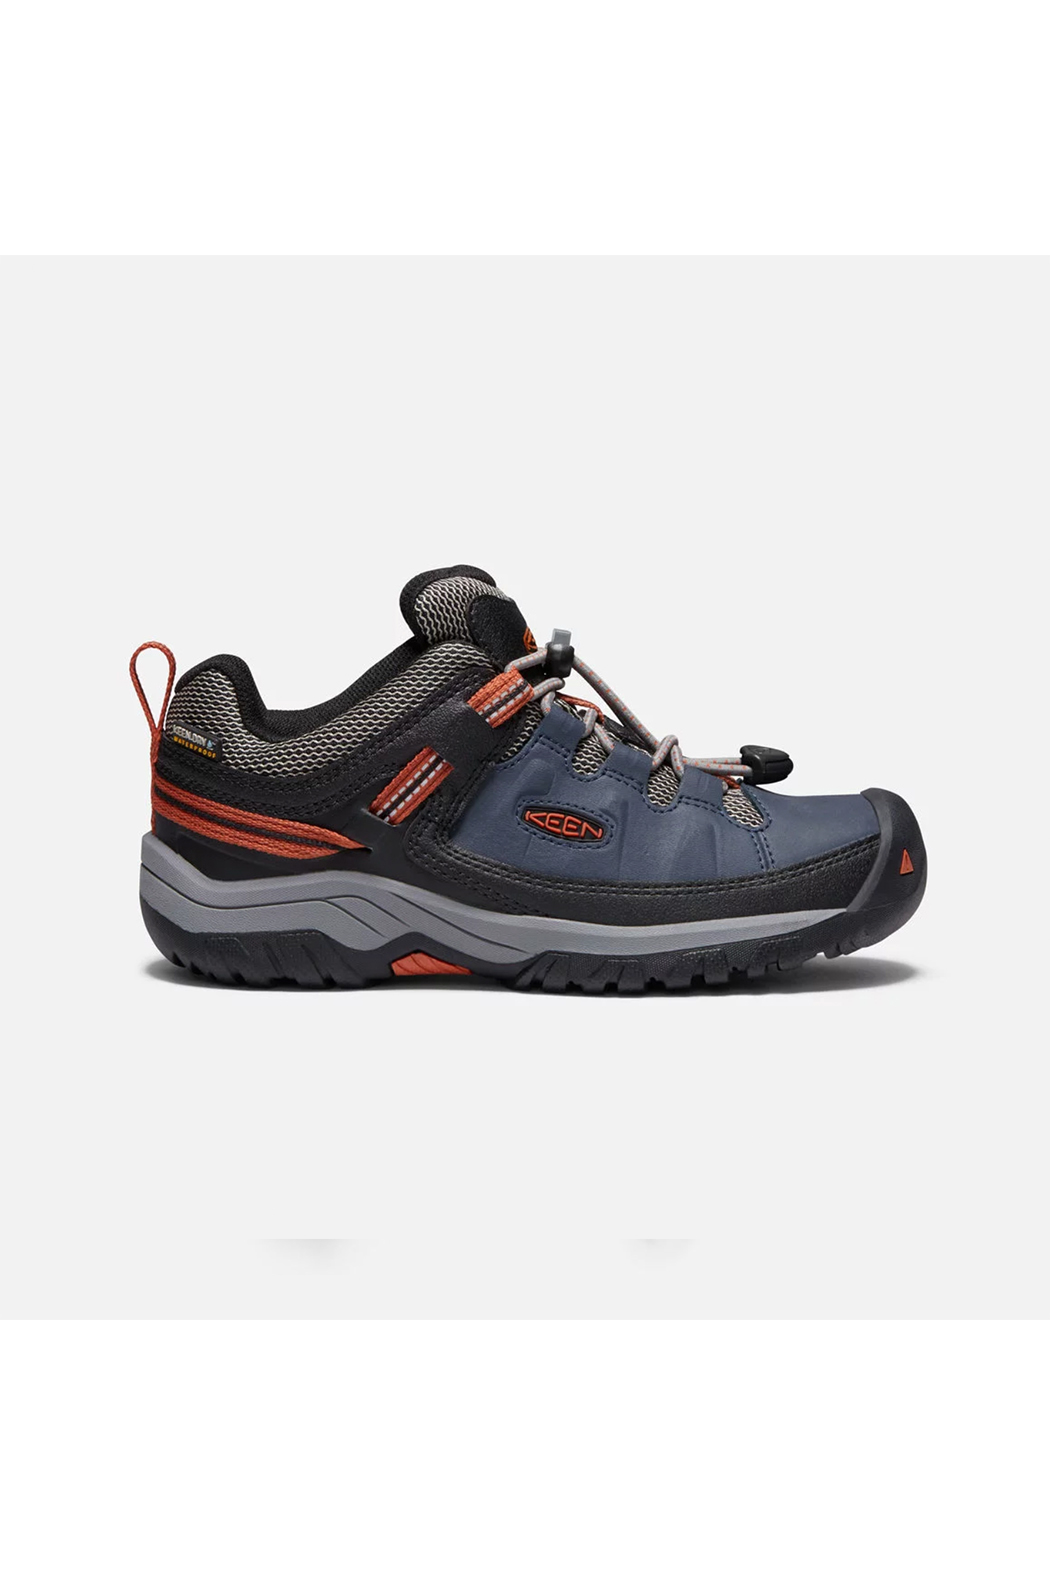 Keen Targhee Low Waterproof Youth - Main Image